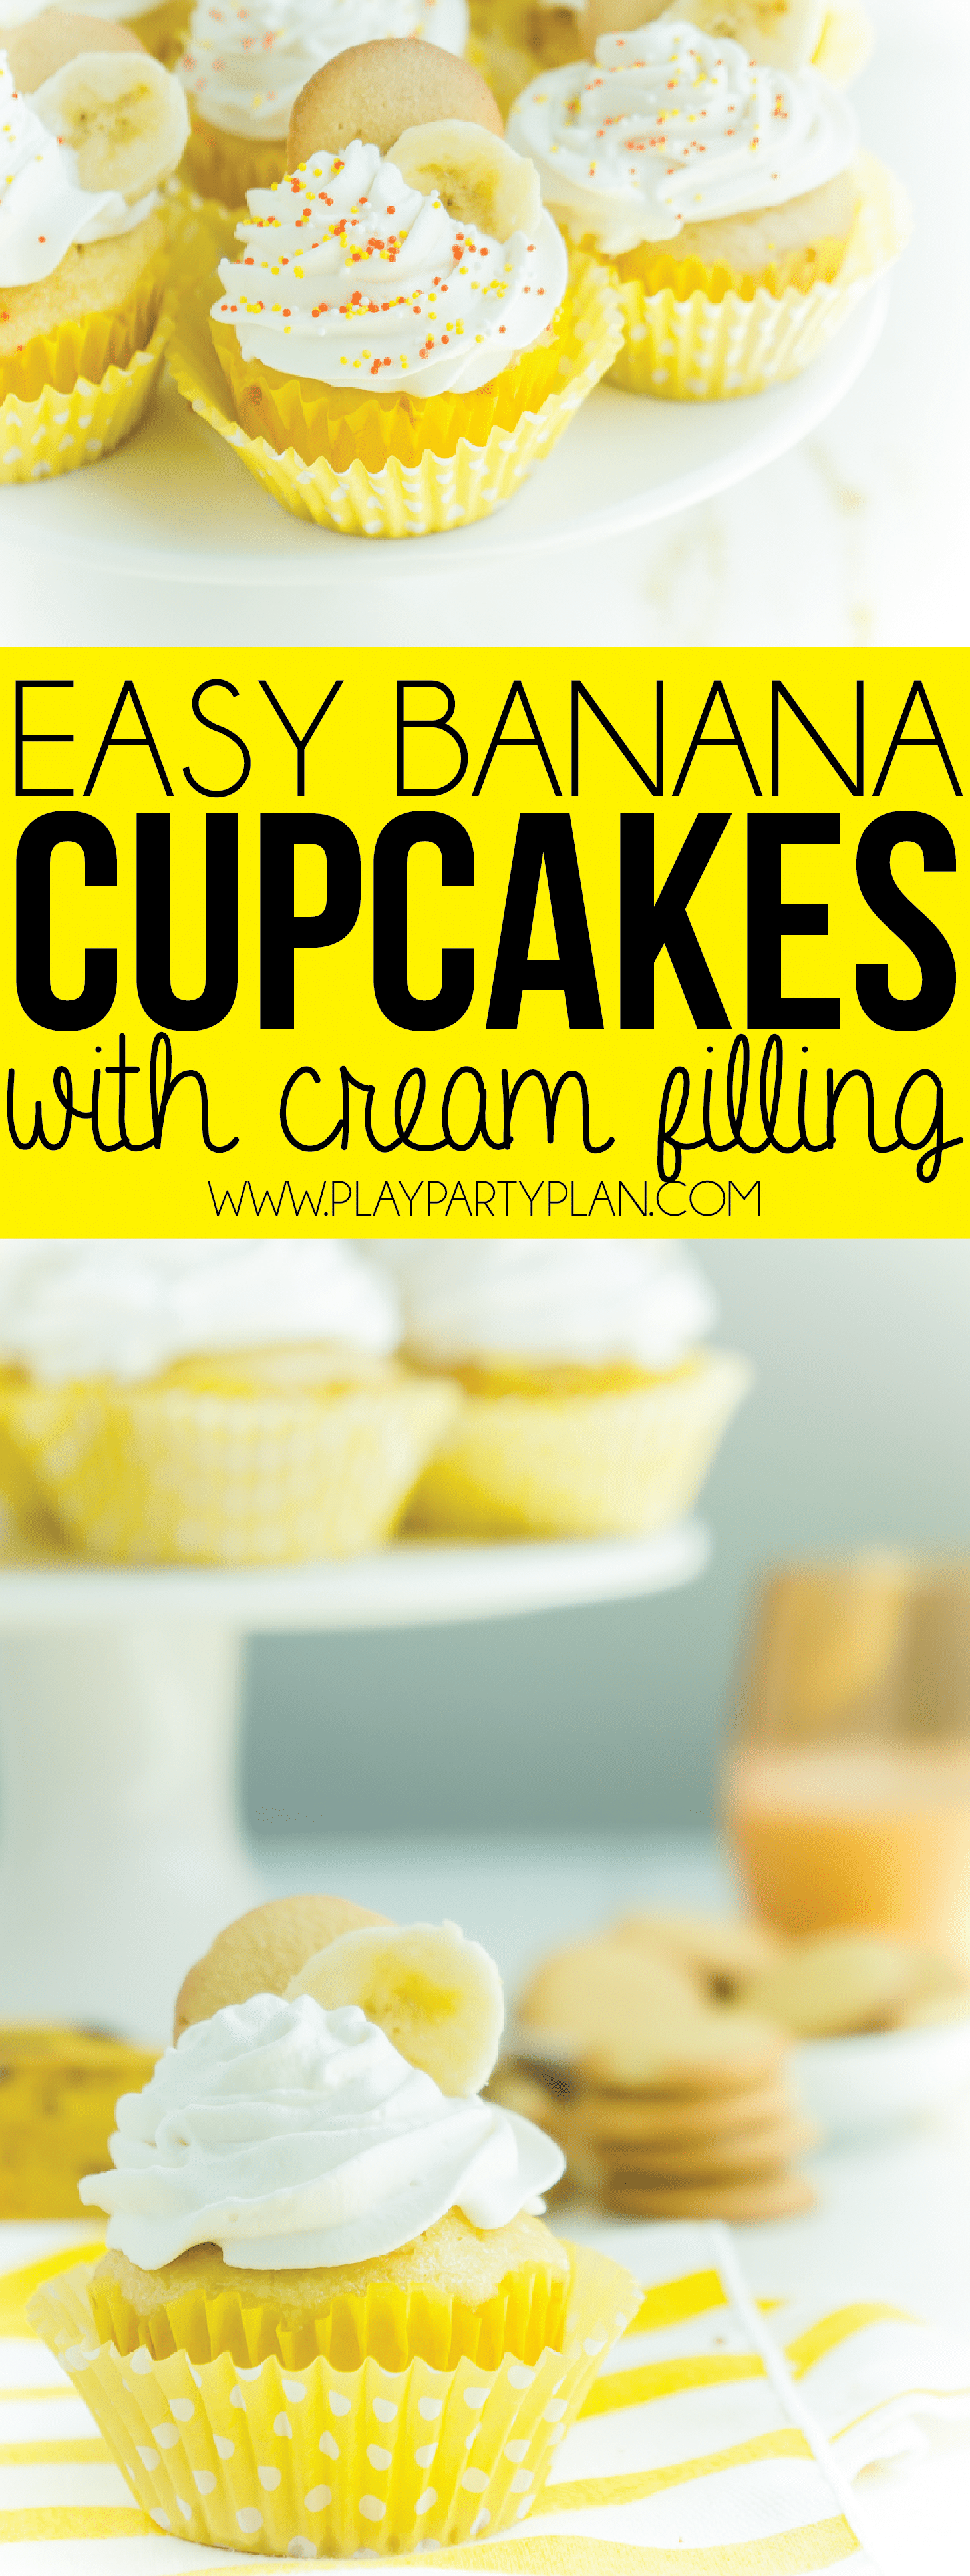 These easy banana cupcakes can either be made with cake mix or from scratch! This is the best recipe made with a pudding filling that keeps it moist and fluffy! Definitely one of the best homemade banana cupcakes for kids ever!